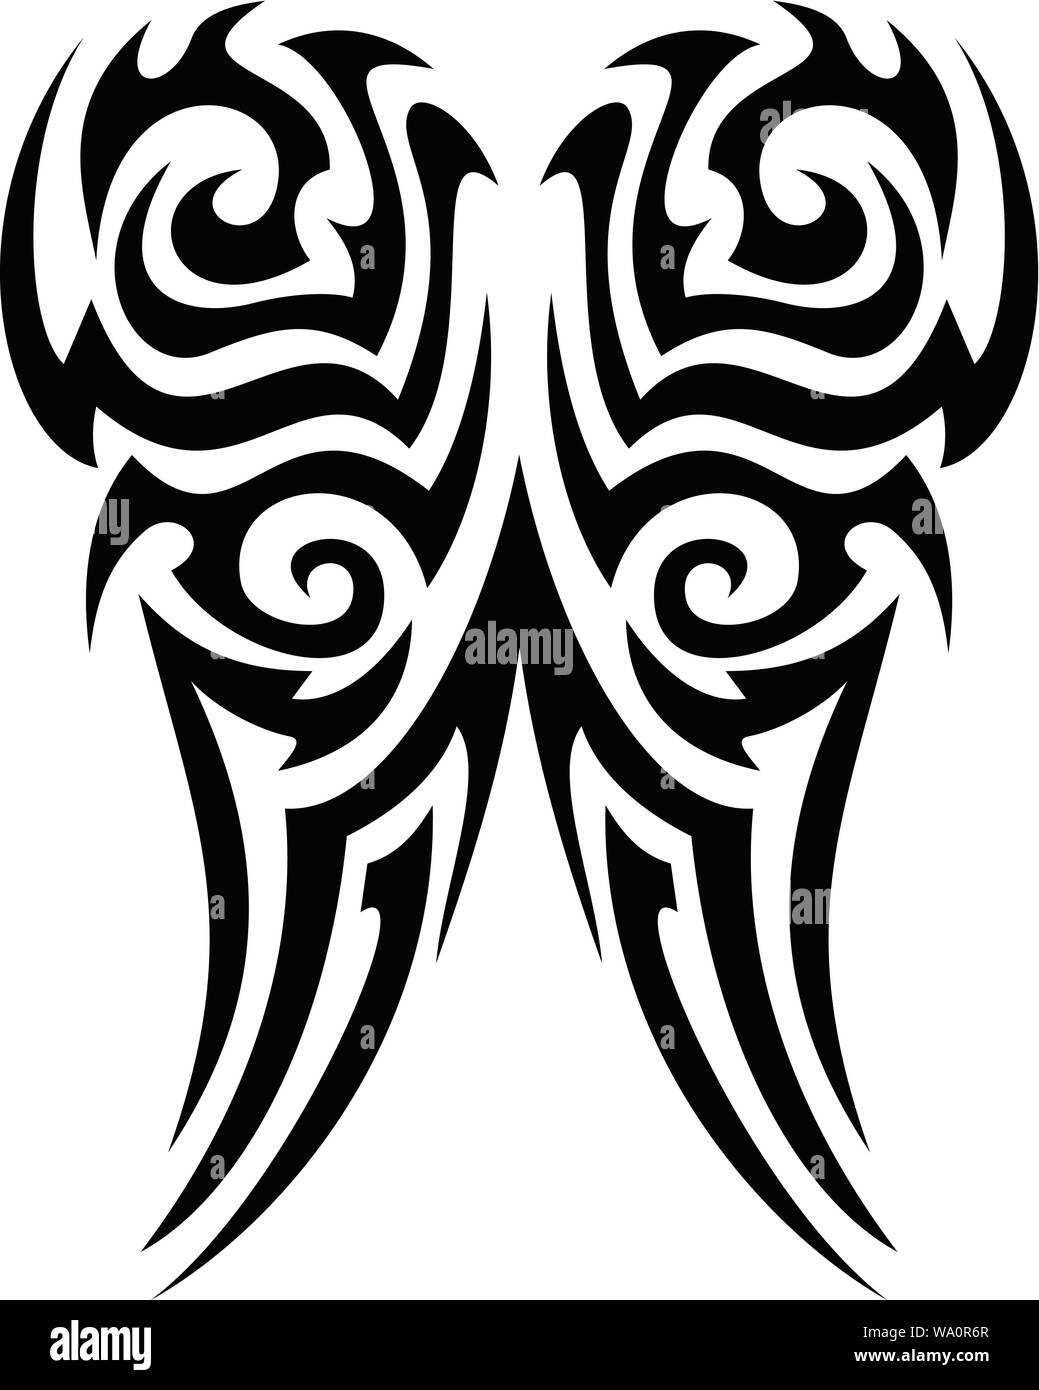 Tribal Tattoo Vector Design Stock Vector Image Art Alamy Download free tattoo vectors and other types of tattoo graphics and clipart at freevector.com! https www alamy com tribal tattoo vector design image264320303 html